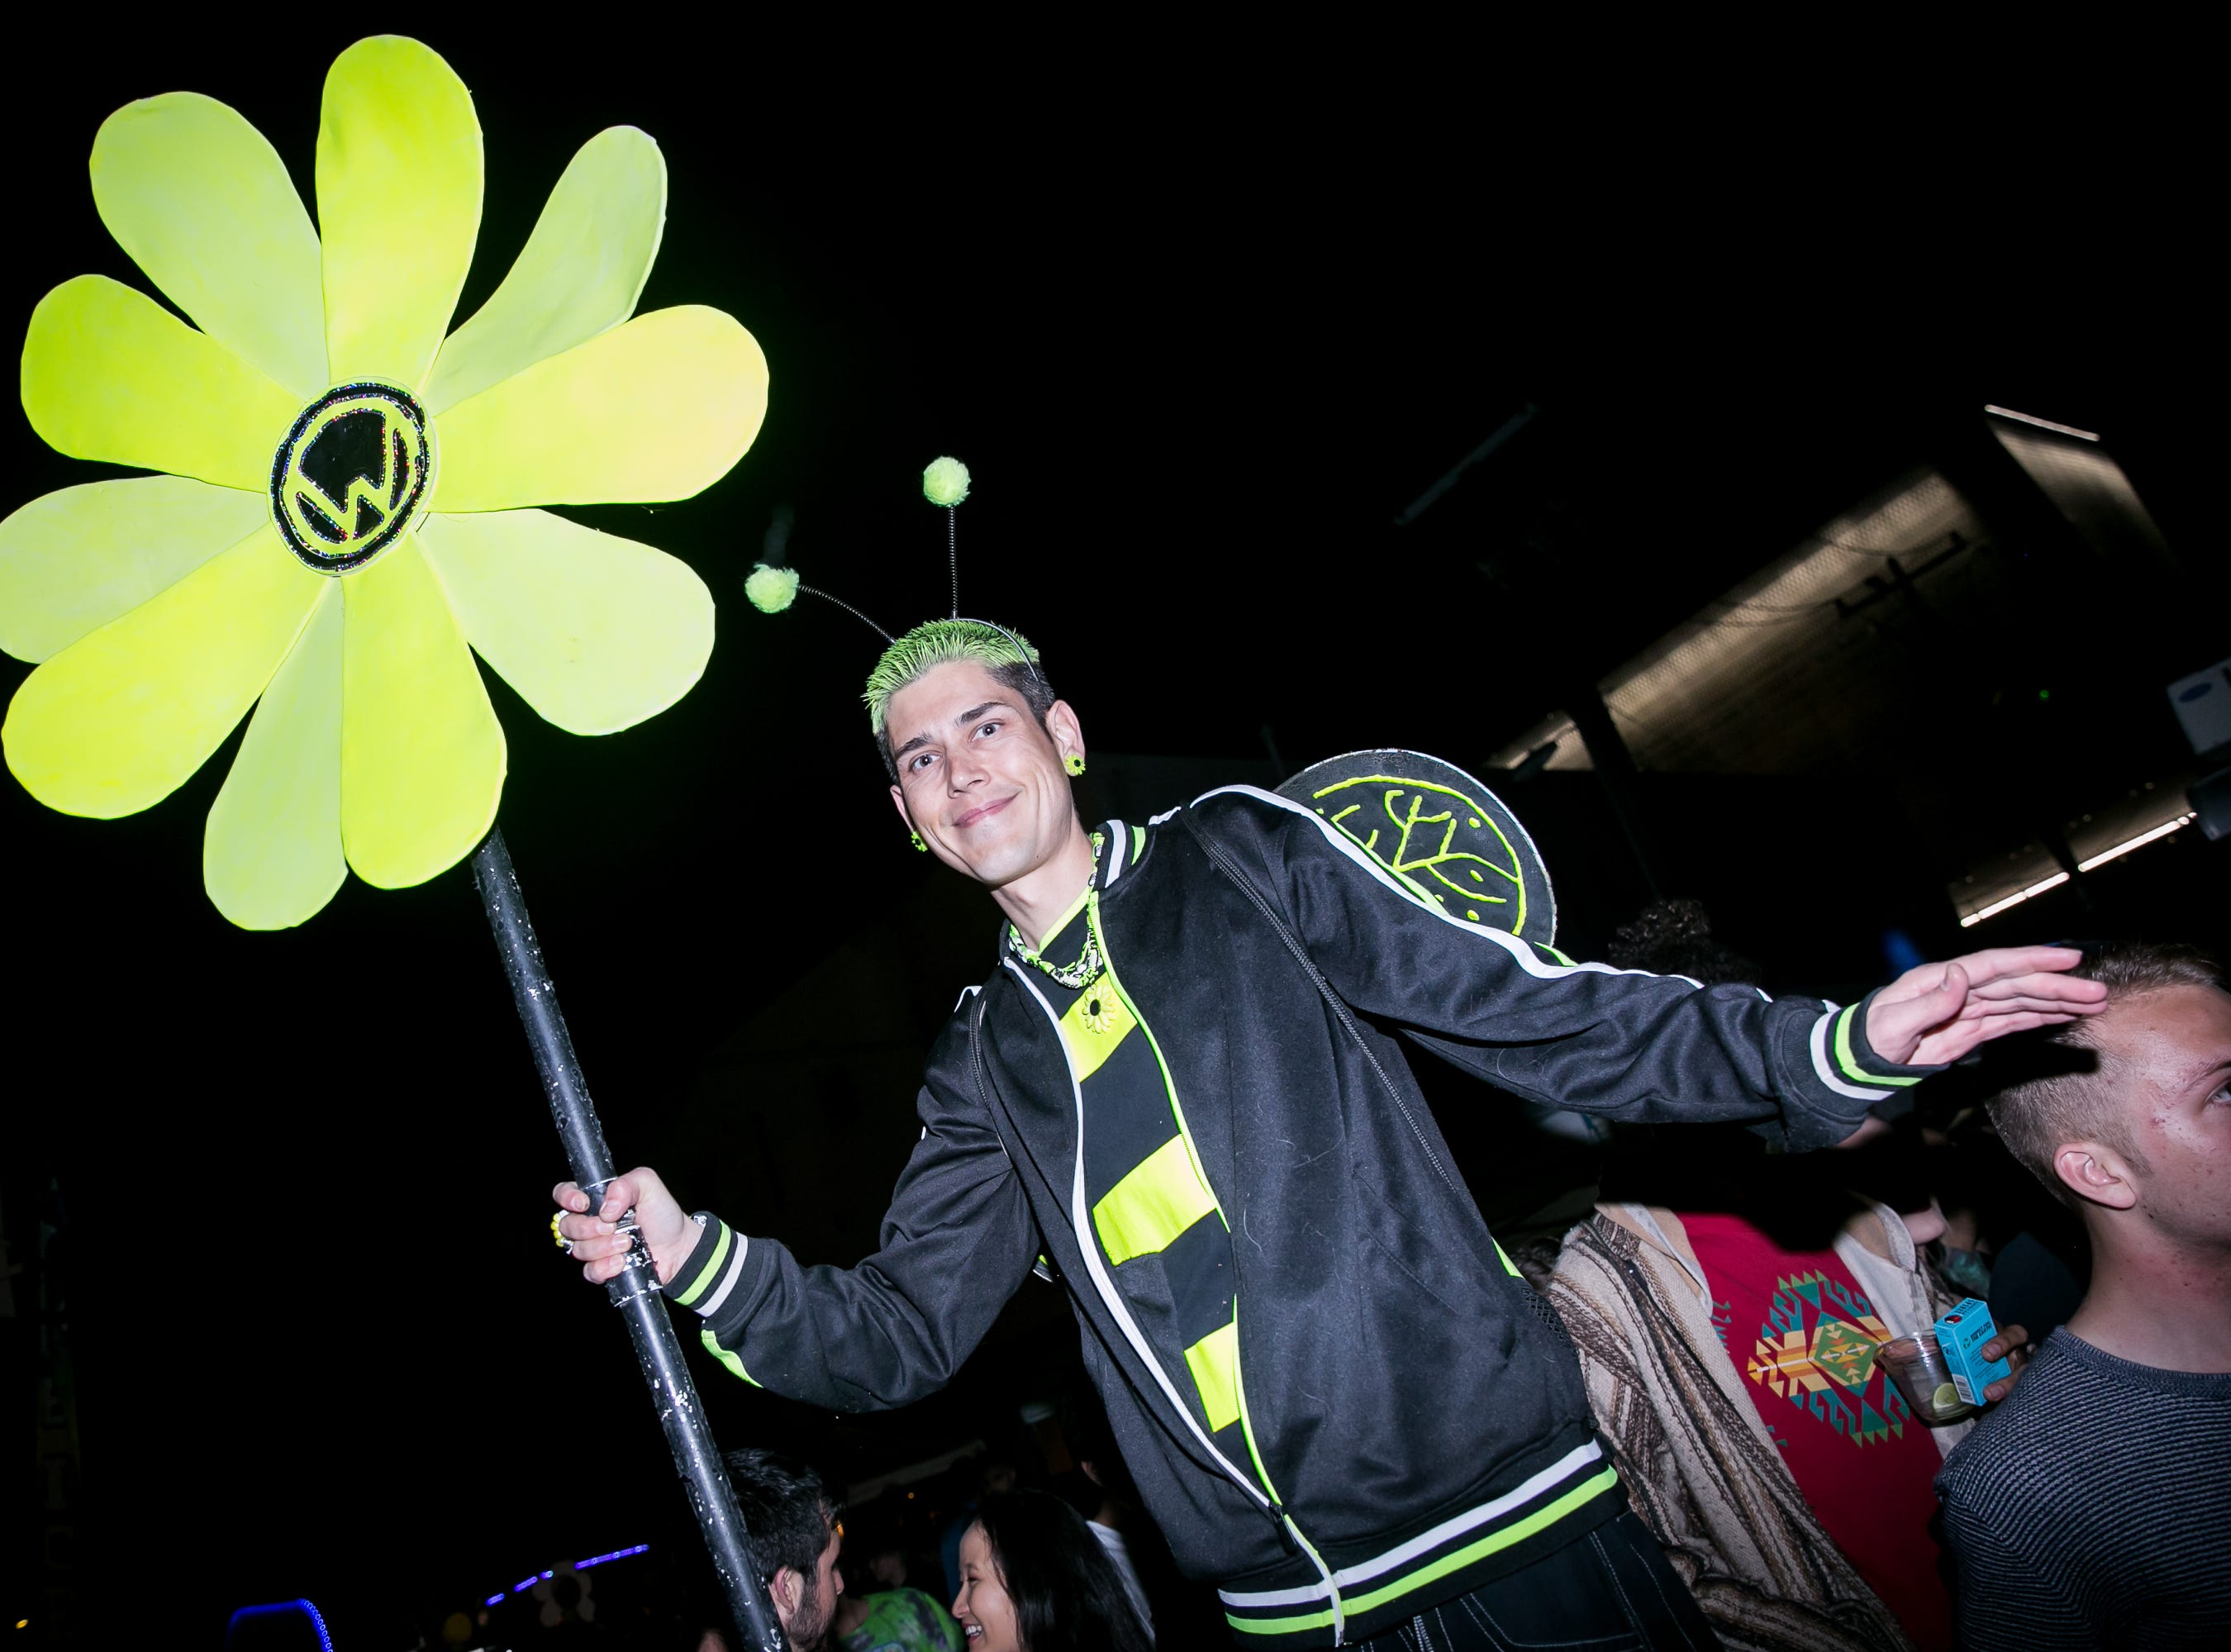 This bumblebee walked around on stilts at the Full Moon Festival at the Pressroom on March 23, 2019.